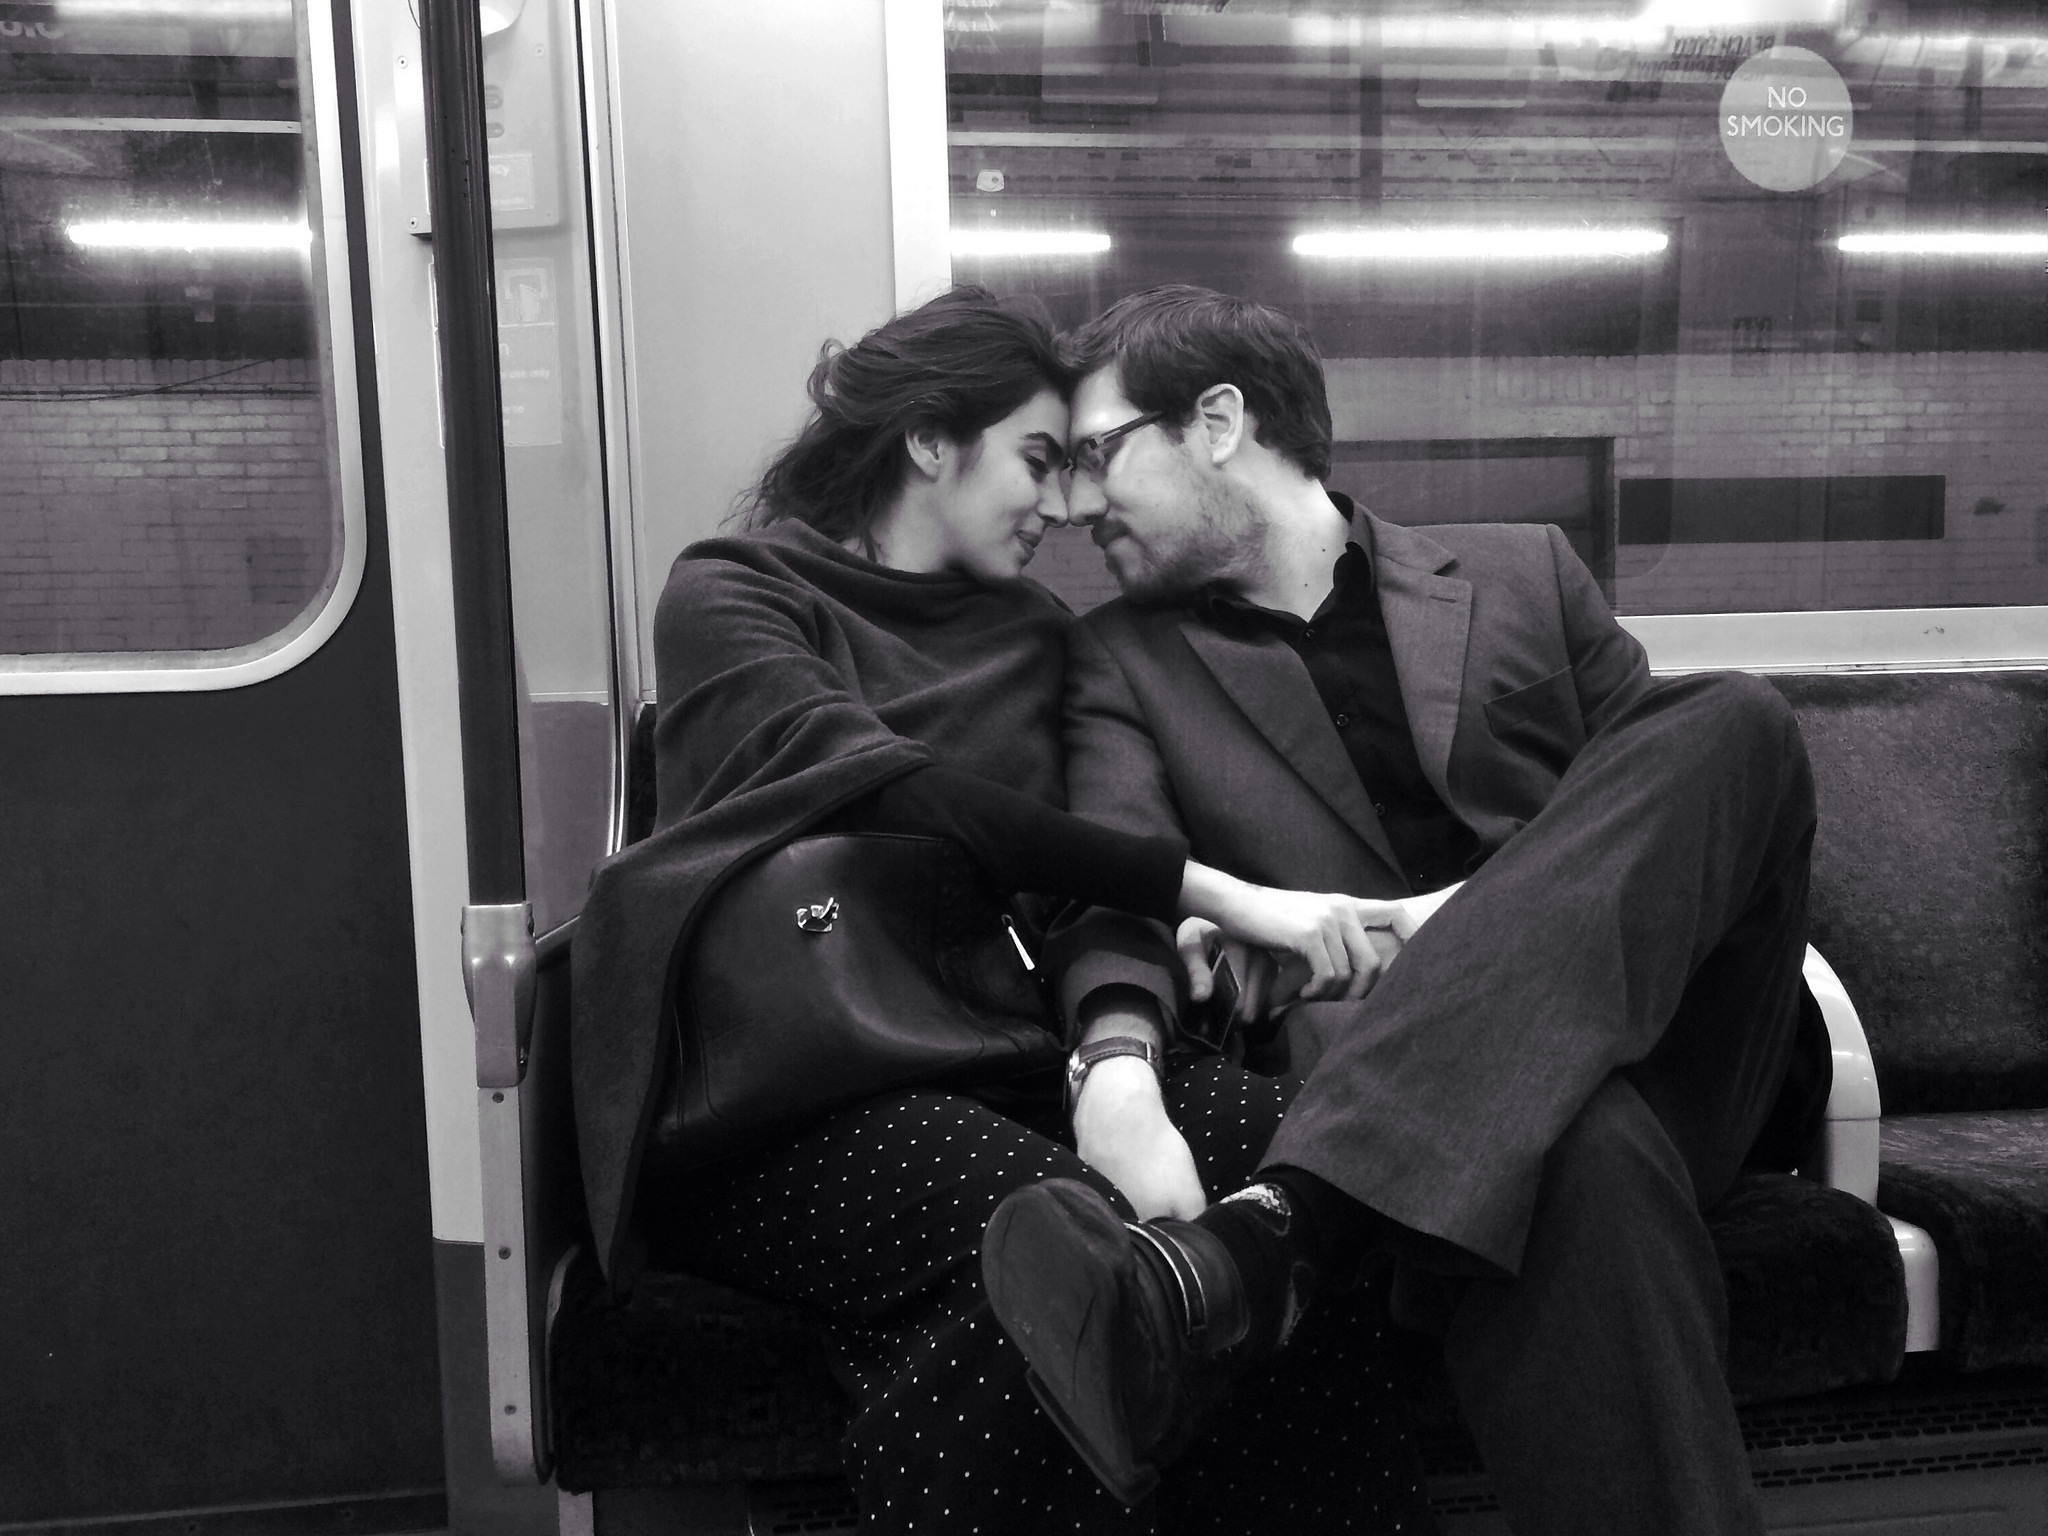 Two tube travellers rub noses on the District line.